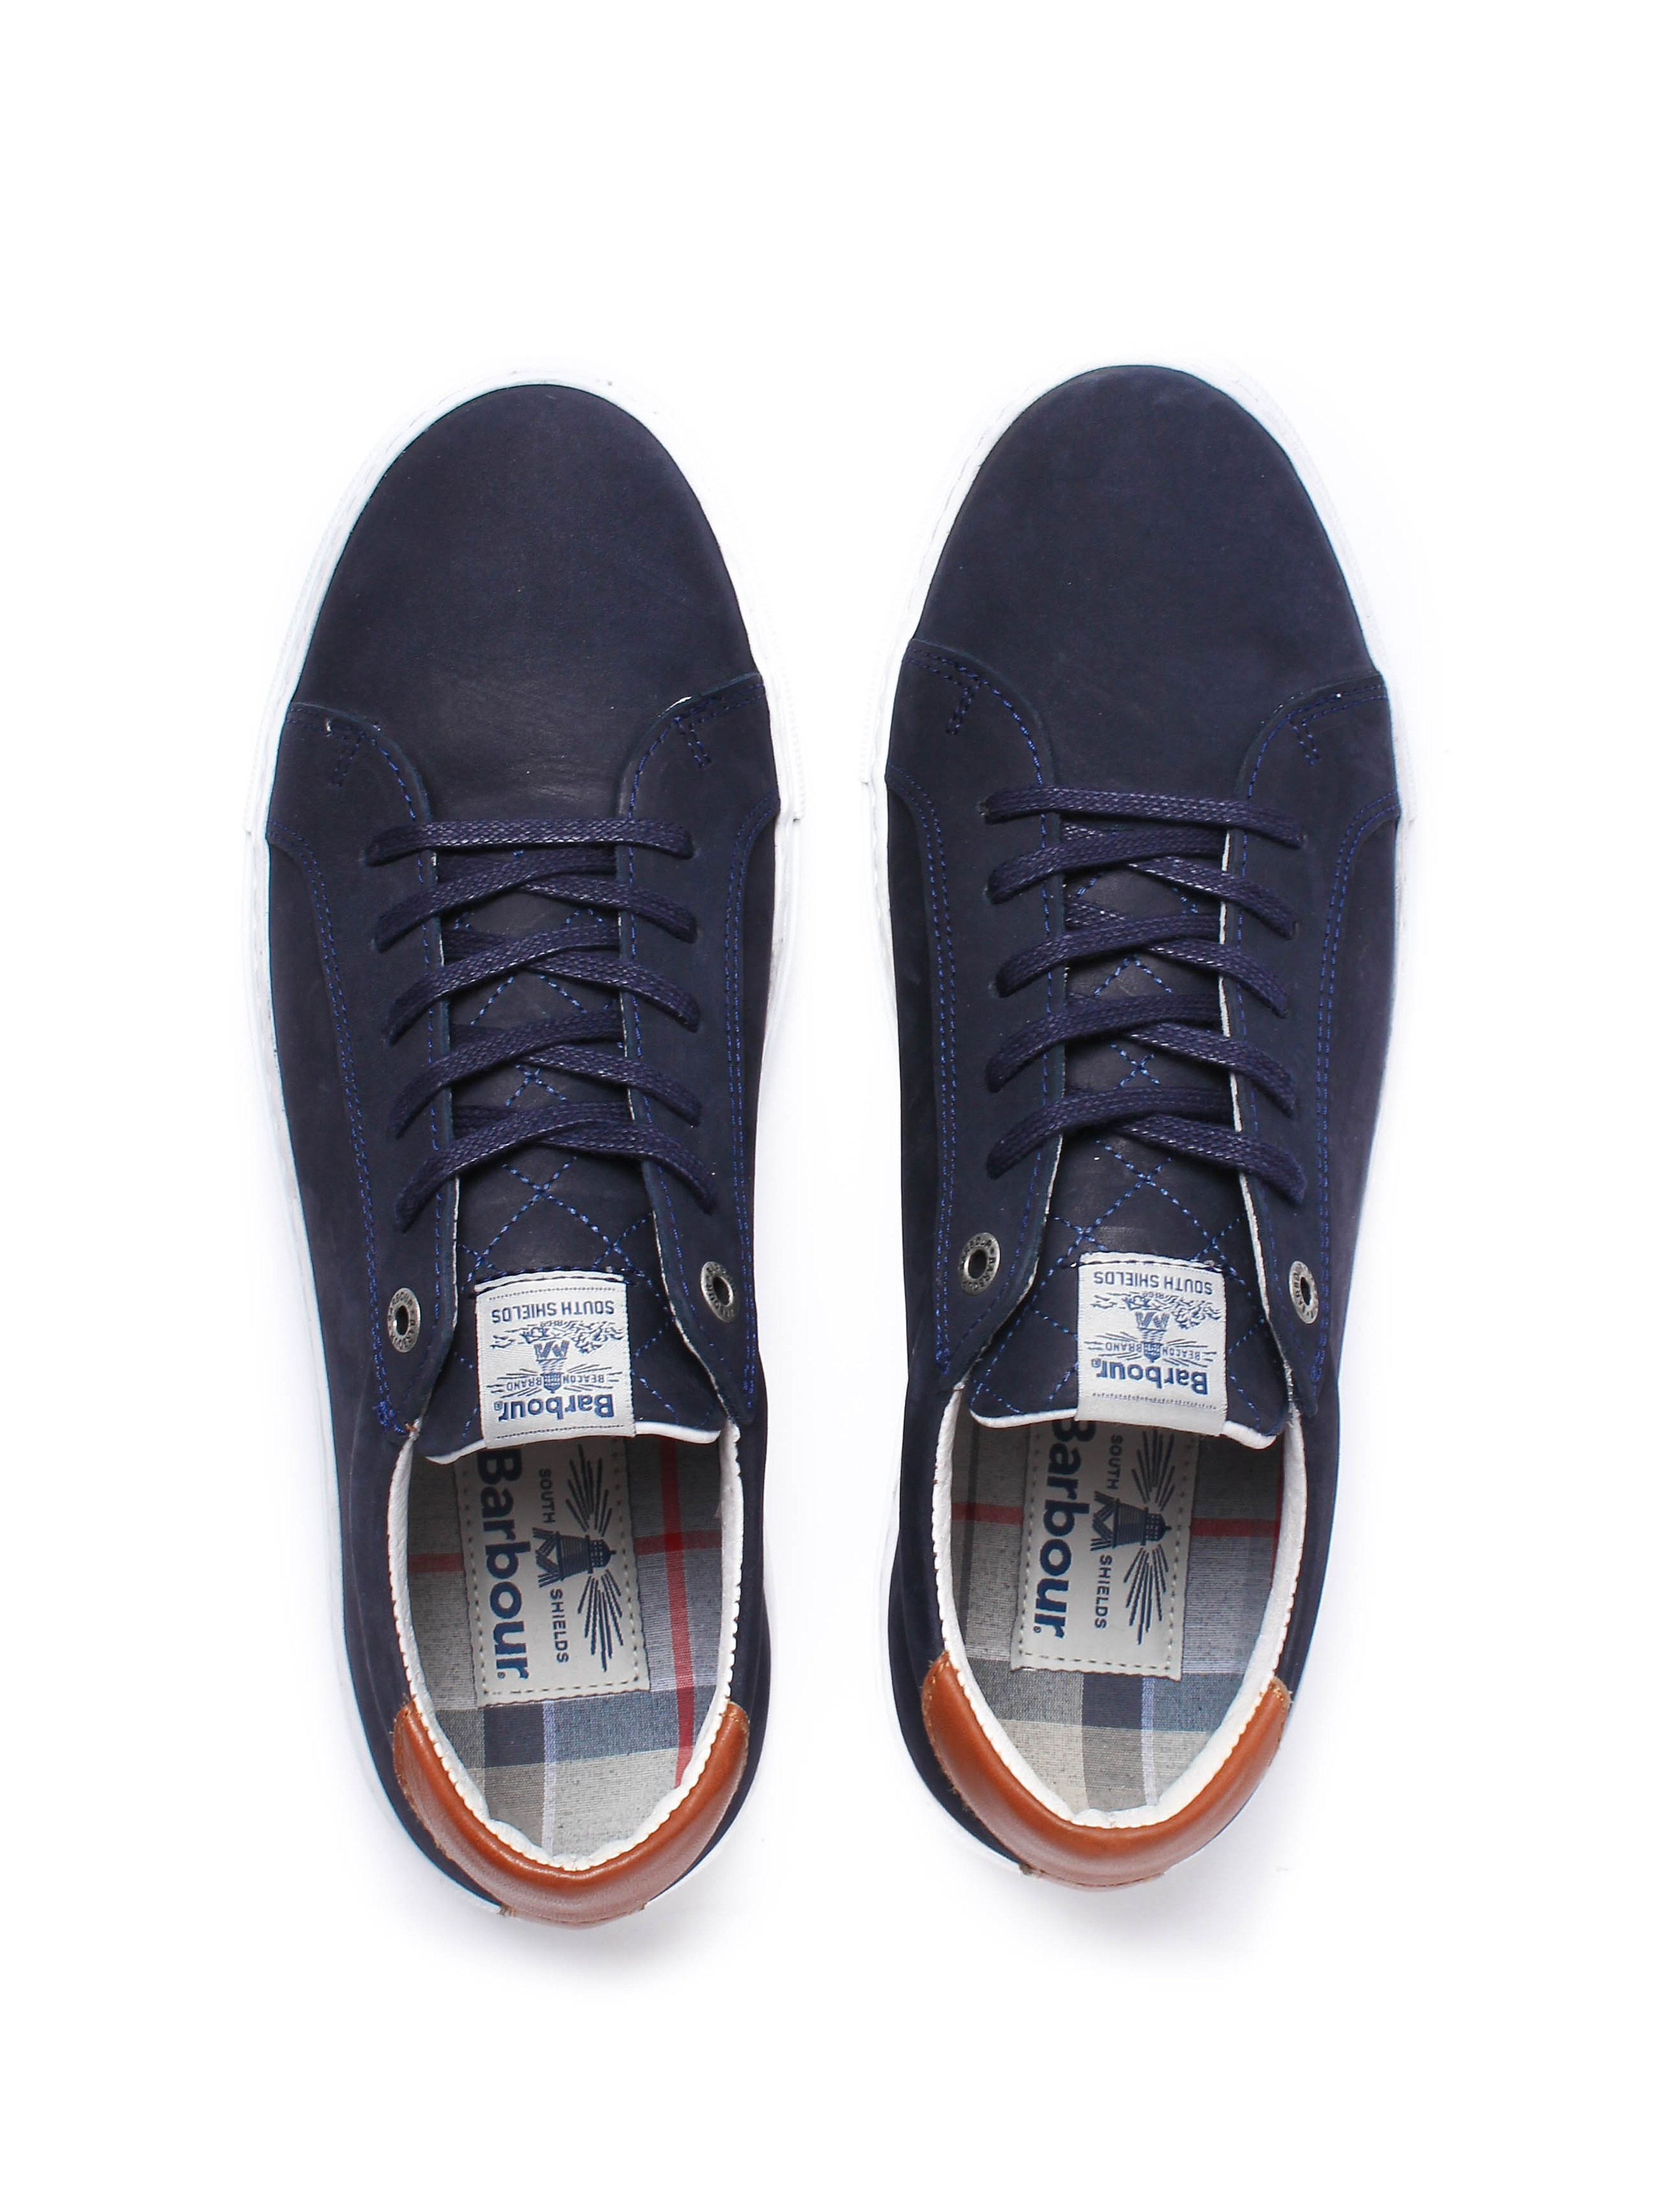 Barbour Women's Natalie Cupsole Trainers - Navy Nubuck